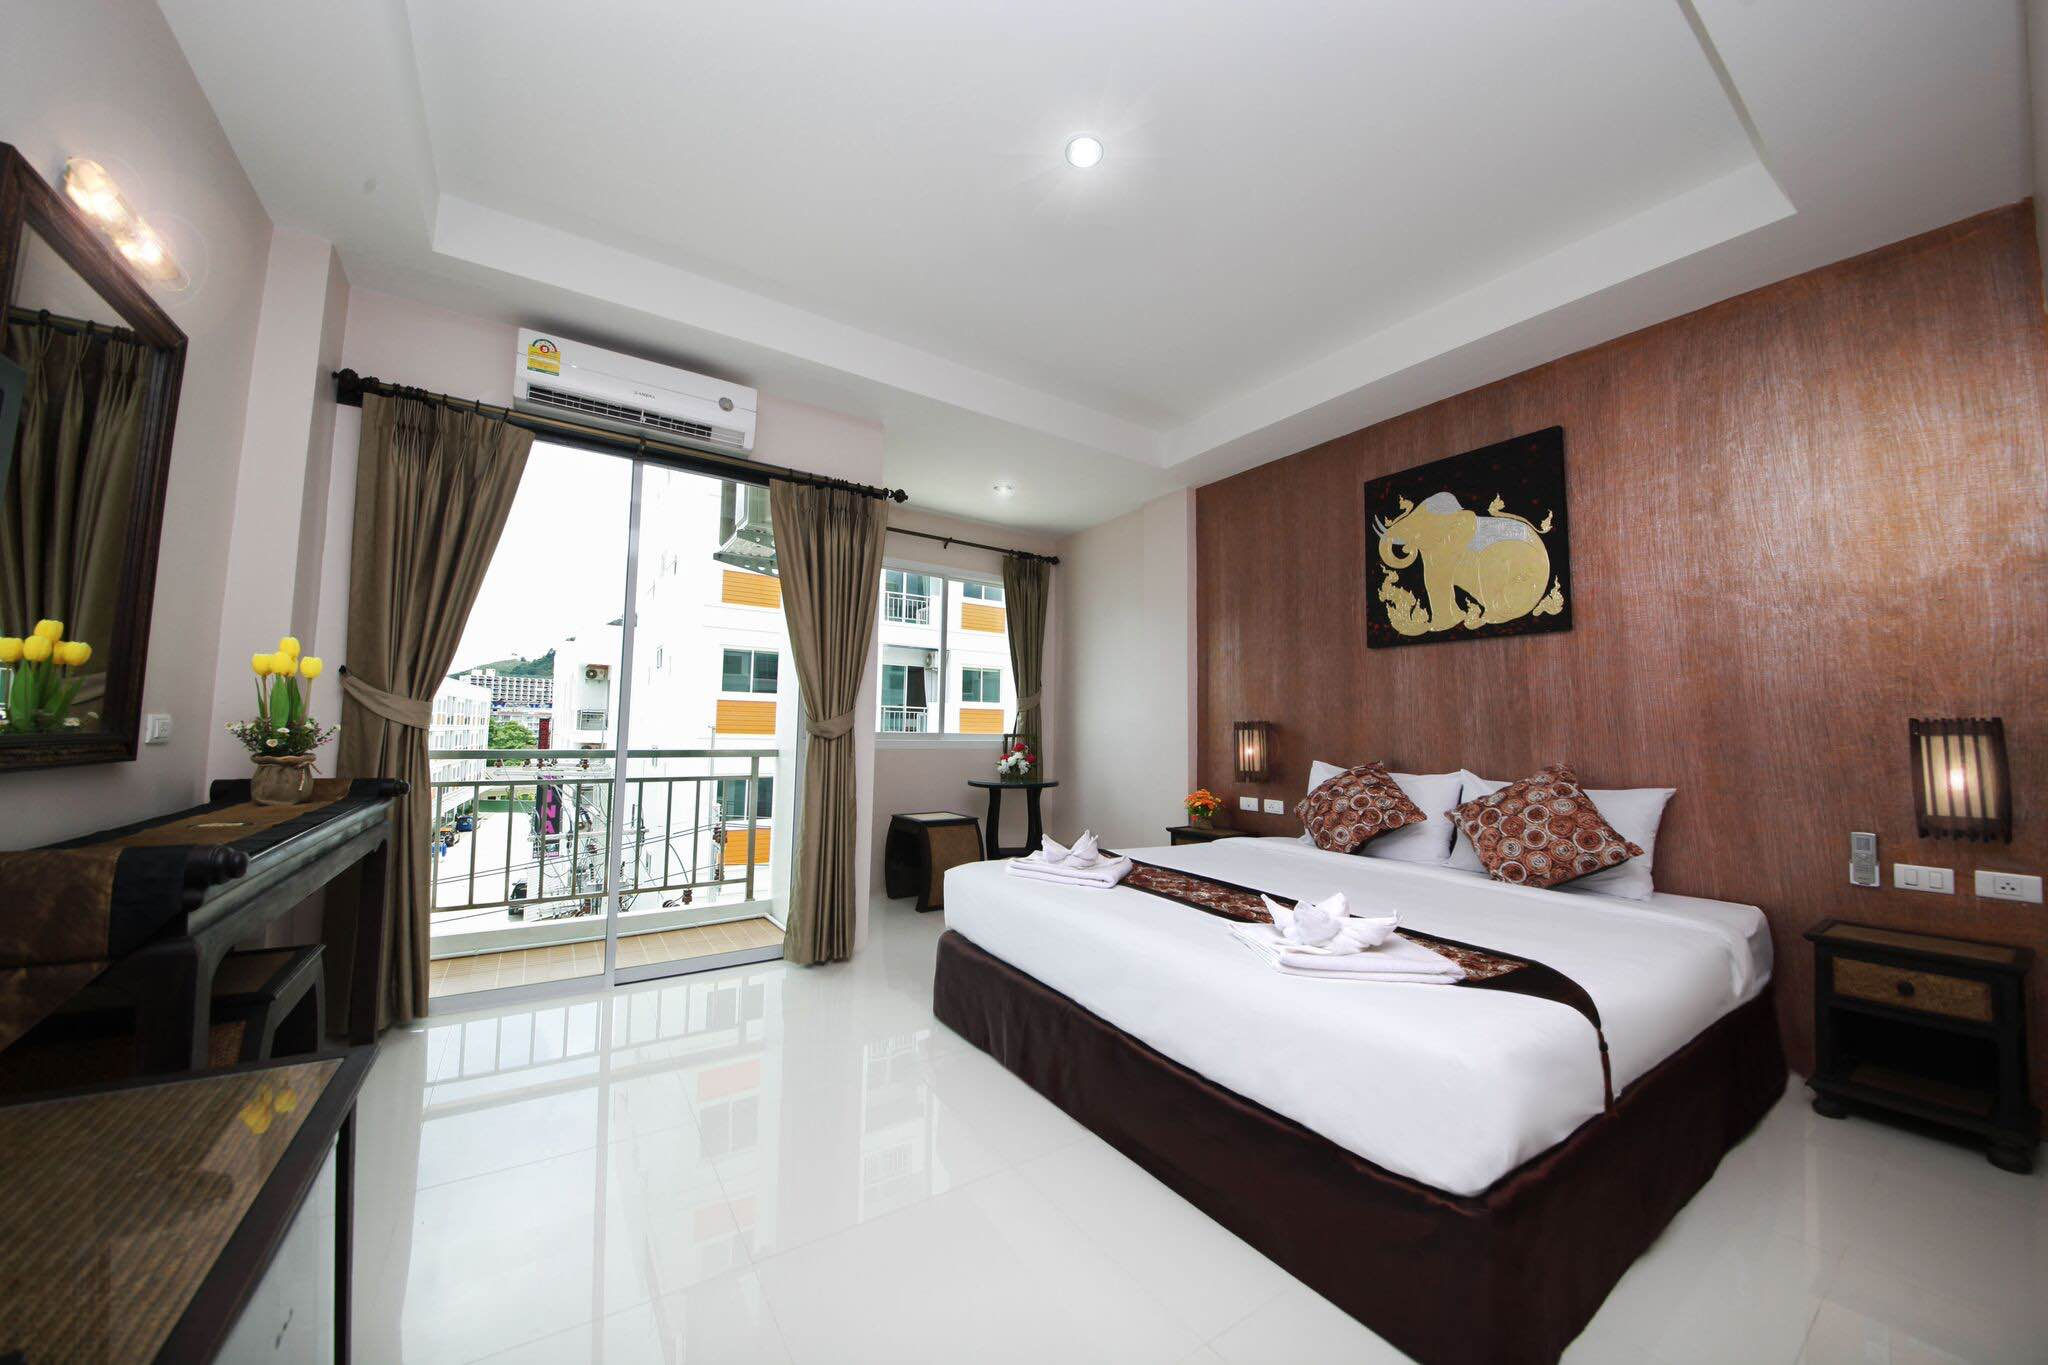 RE/MAX Top Properties Agency's Phuket,Patong Beach, Guesthouse with 61 Rooms AWARD Winning   4